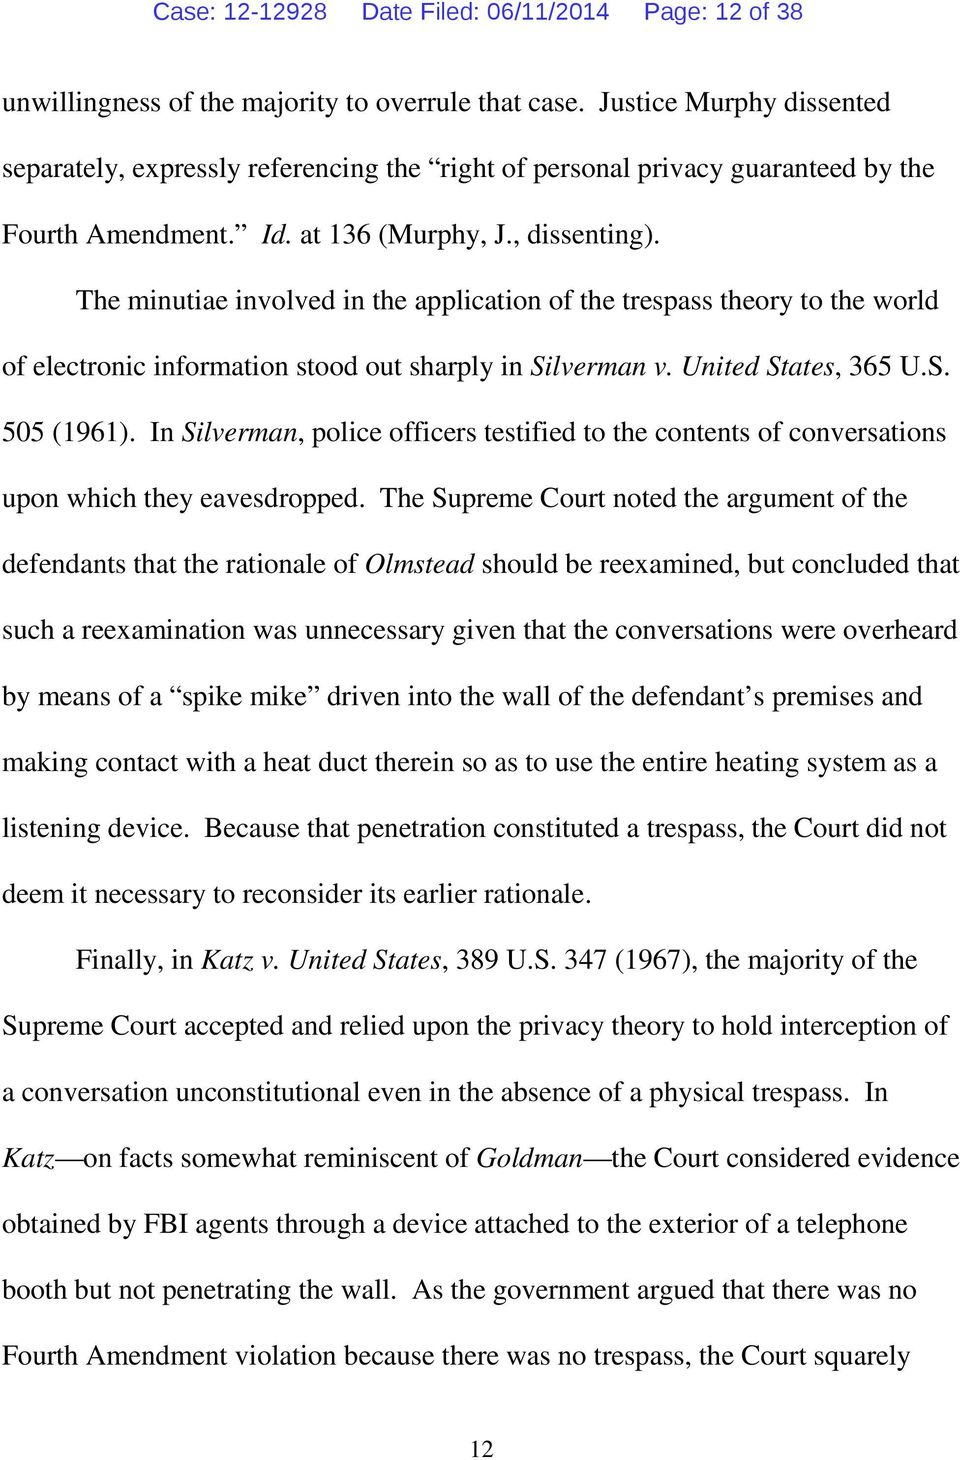 The minutiae involved in the application of the trespass theory to the world of electronic information stood out sharply in Silverman v. United States, 365 U.S. 505 (1961).